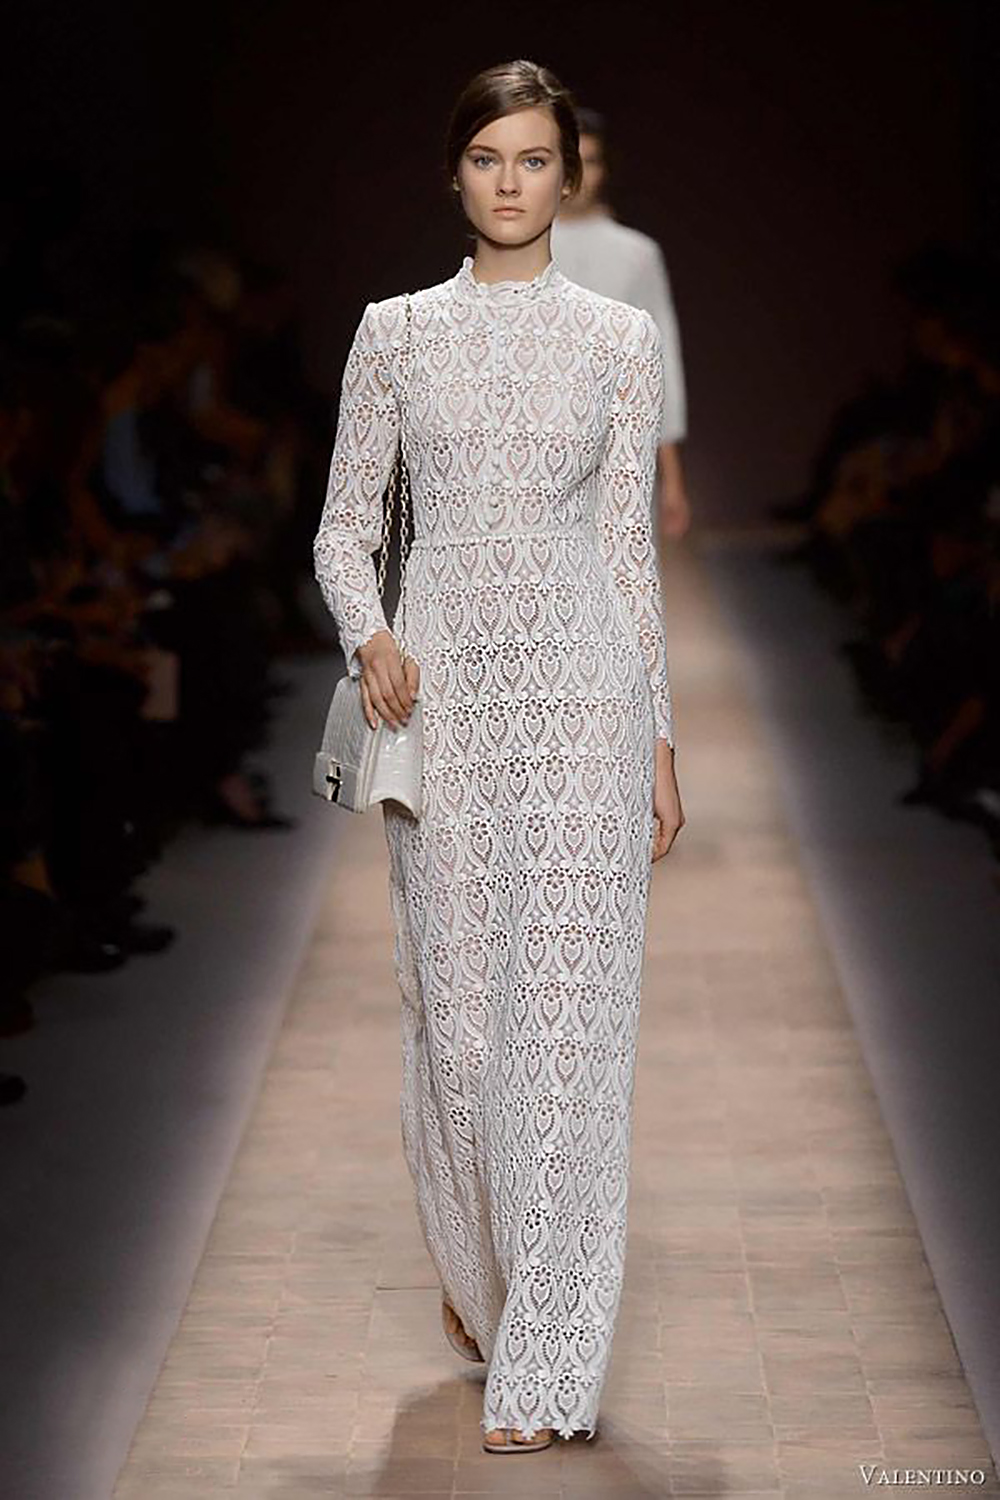 Bohemian Prints Valentino macrame long sleeve dress-110.jpg